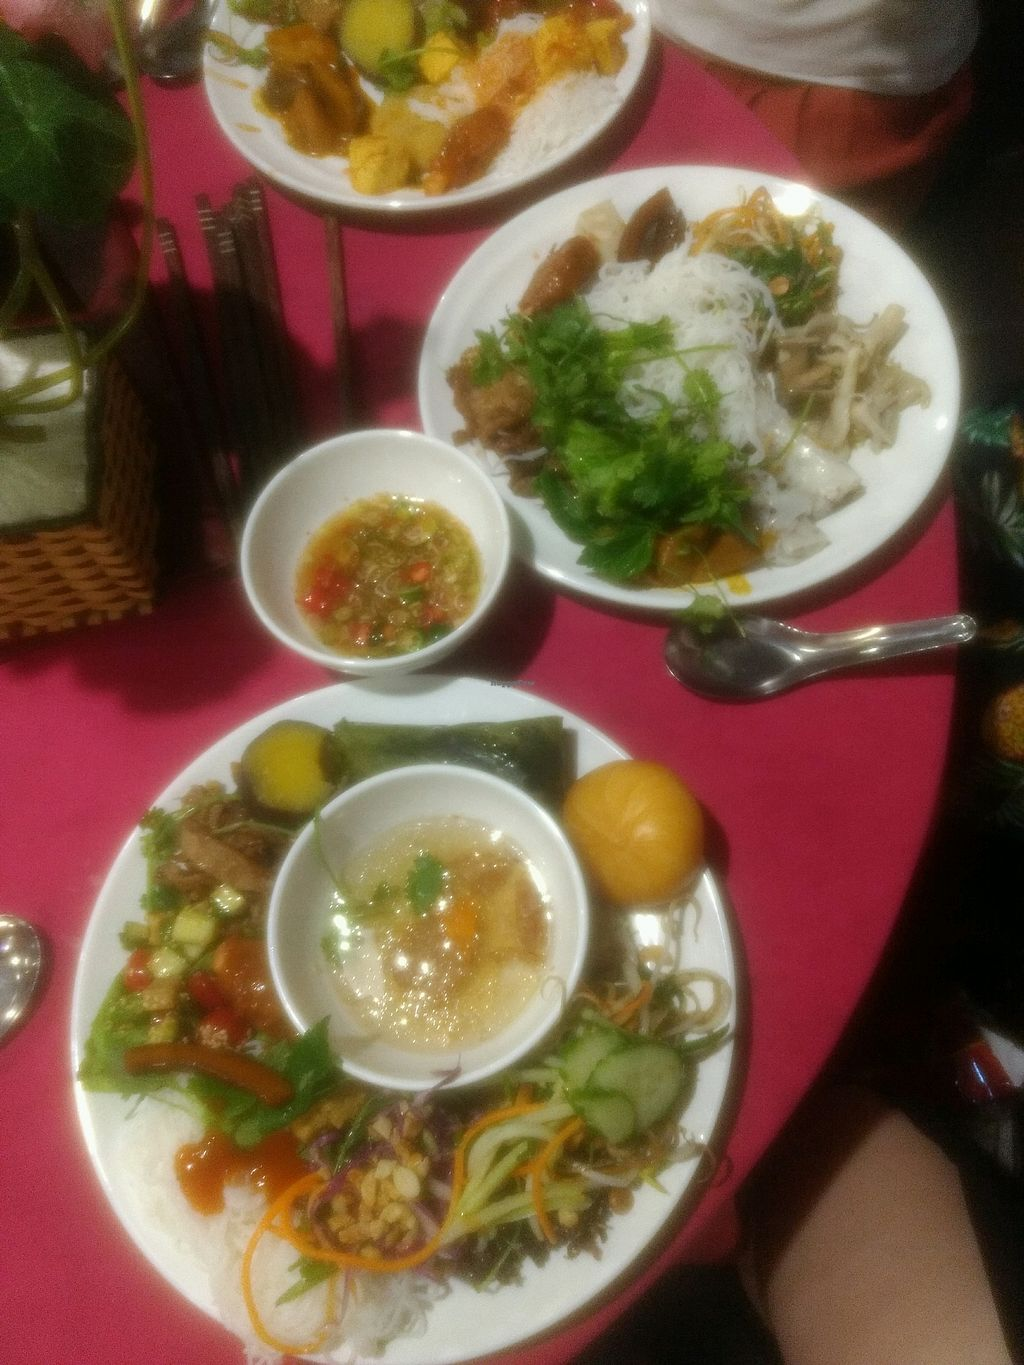 """Photo of An Lac Chay - Hoan Kiem  by <a href=""""/members/profile/VeggiKitty"""">VeggiKitty</a> <br/>food from the buffet table  <br/> April 17, 2018  - <a href='/contact/abuse/image/72337/387254'>Report</a>"""